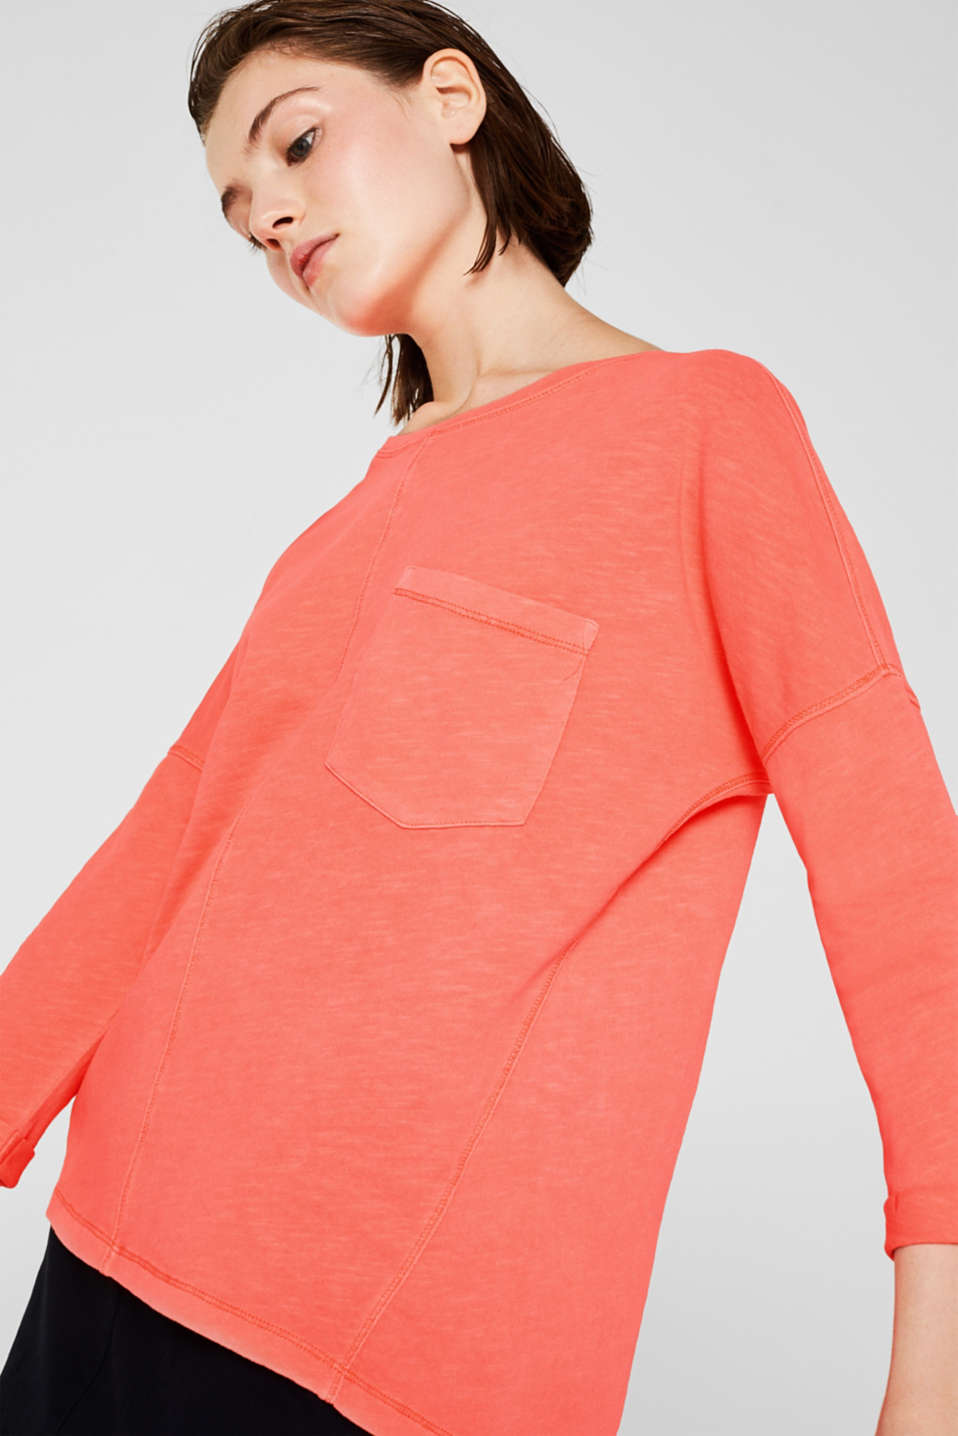 NEON slub T-shirt with a pocket, 100% cotton, CORAL, detail image number 0